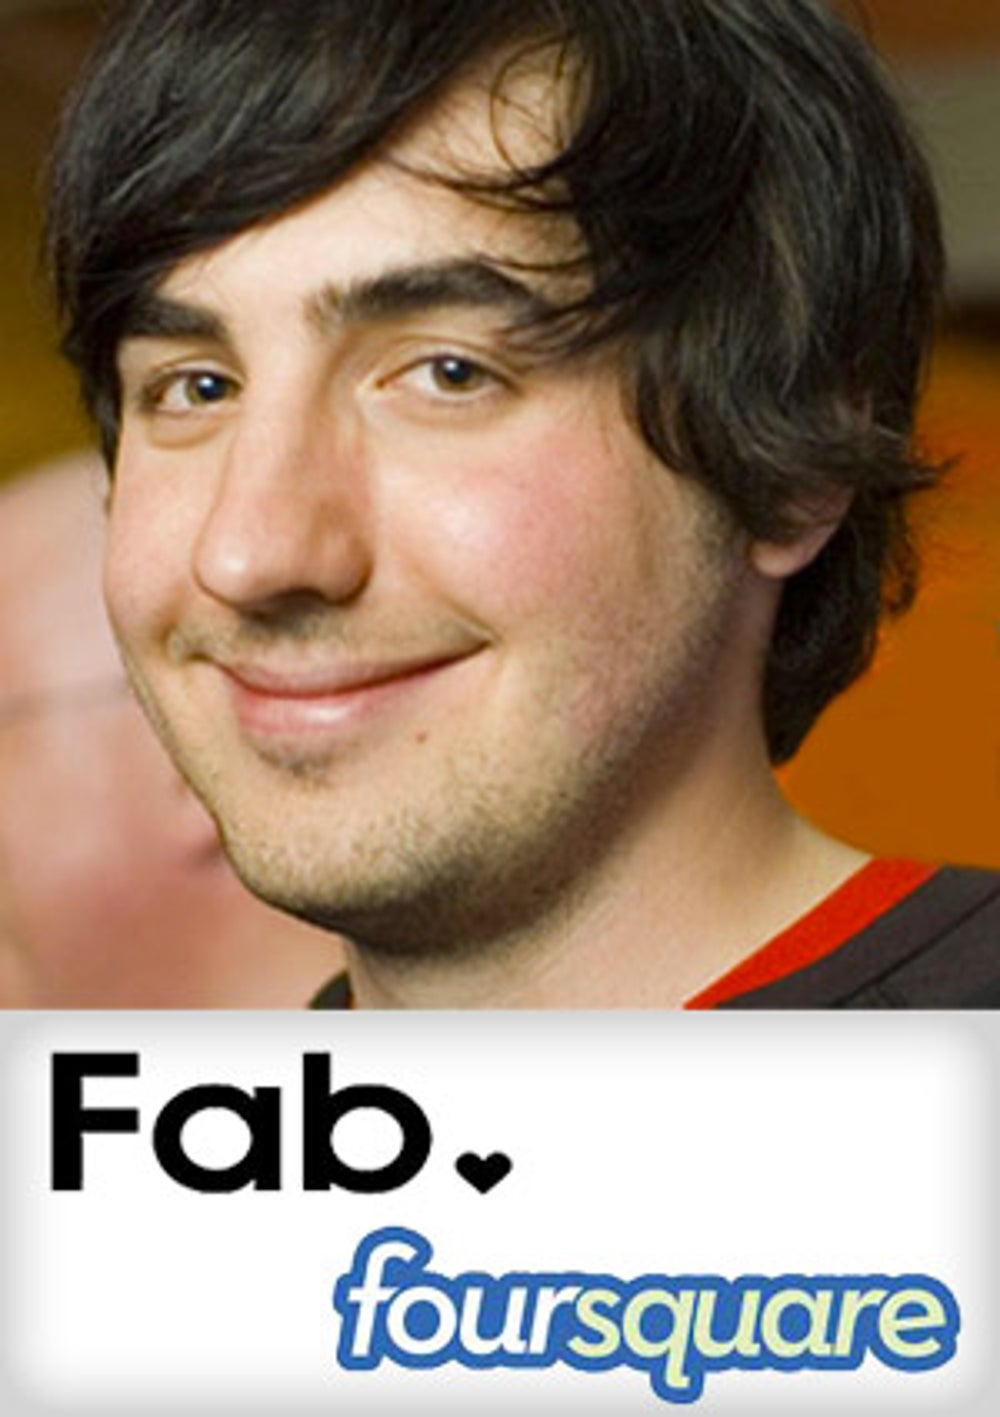 Kevin Rose, investments: Foursquare and Fab